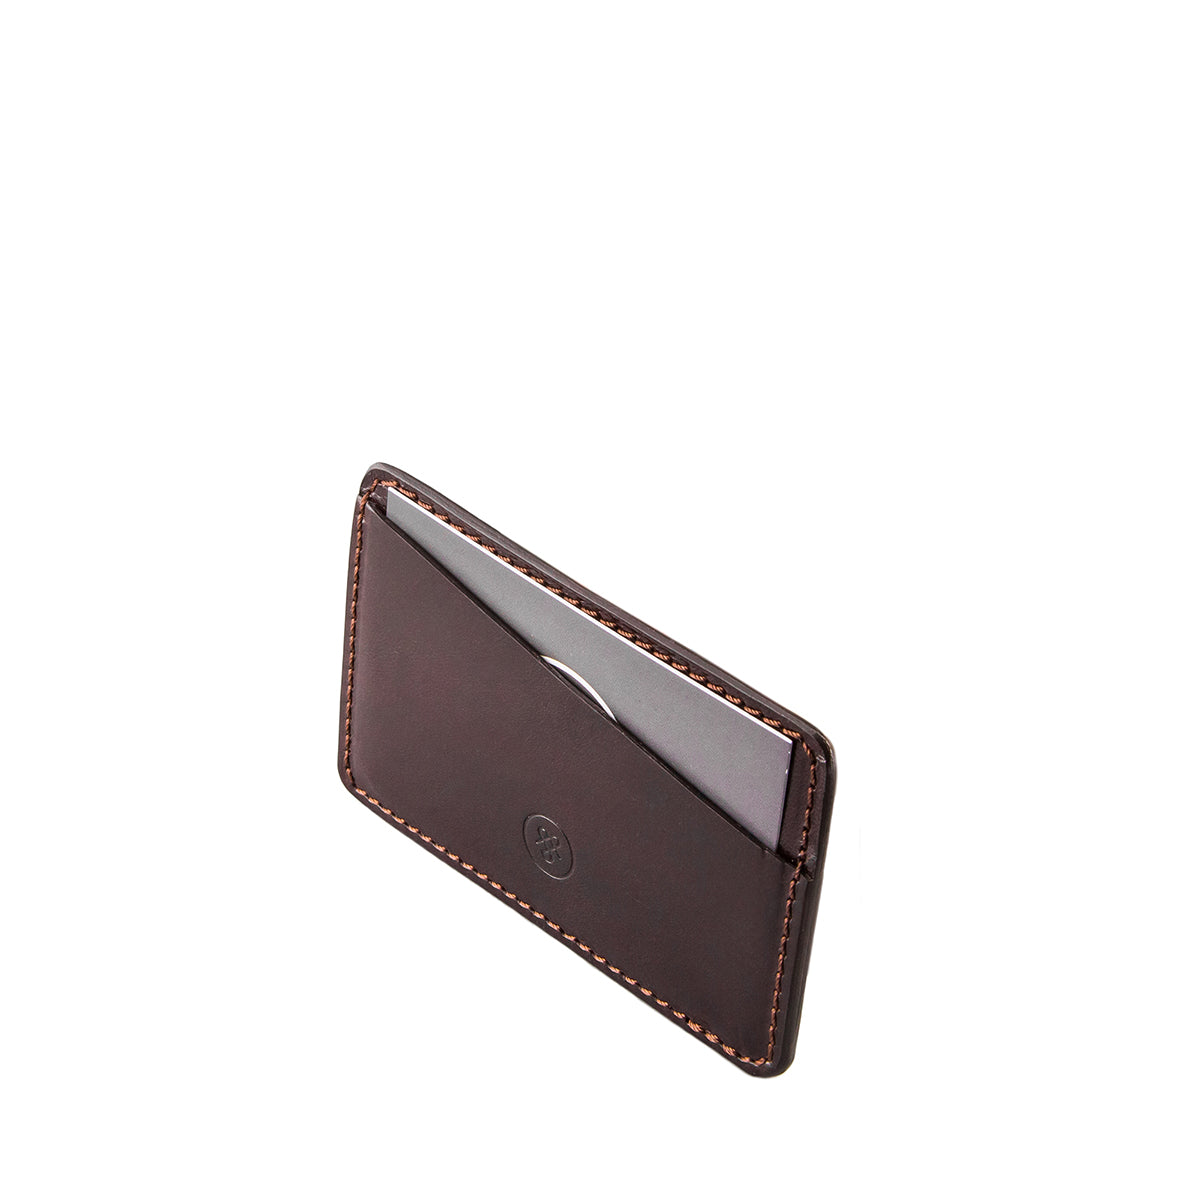 Image 3 of the 'Max' Luxury Brown Leather Card Case